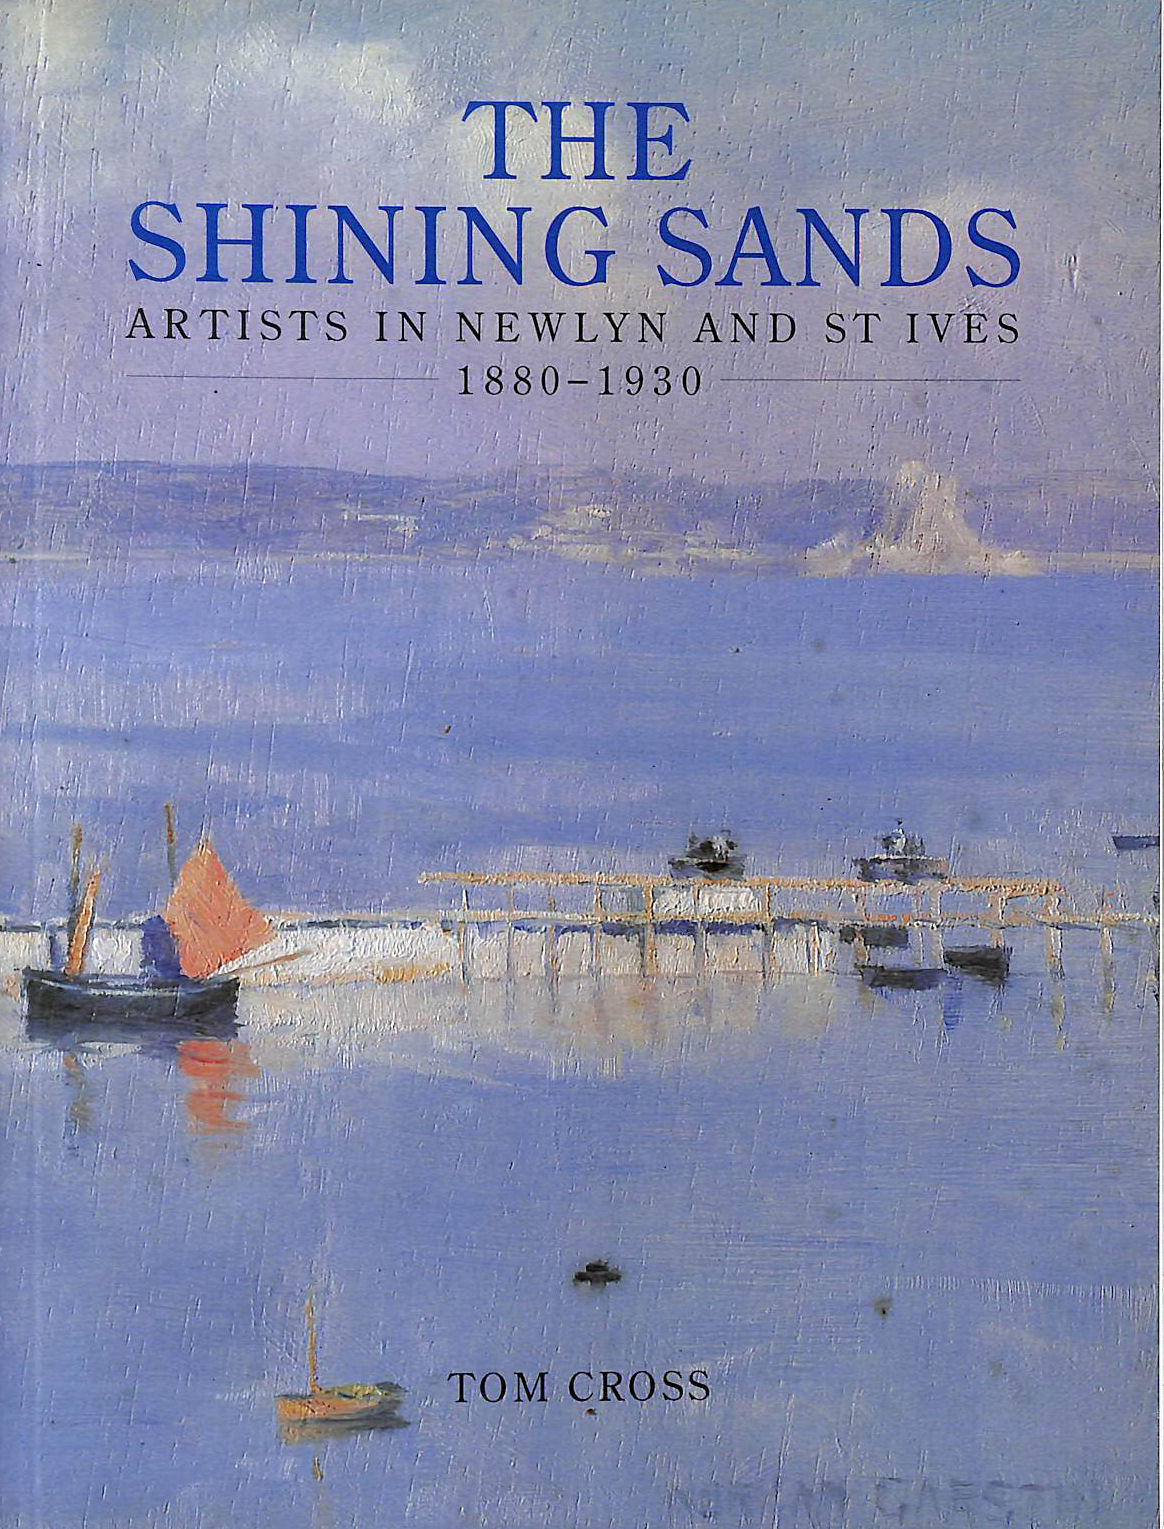 Image for Shining Sands: Artists In Newlyn And St Ives 1880-1930